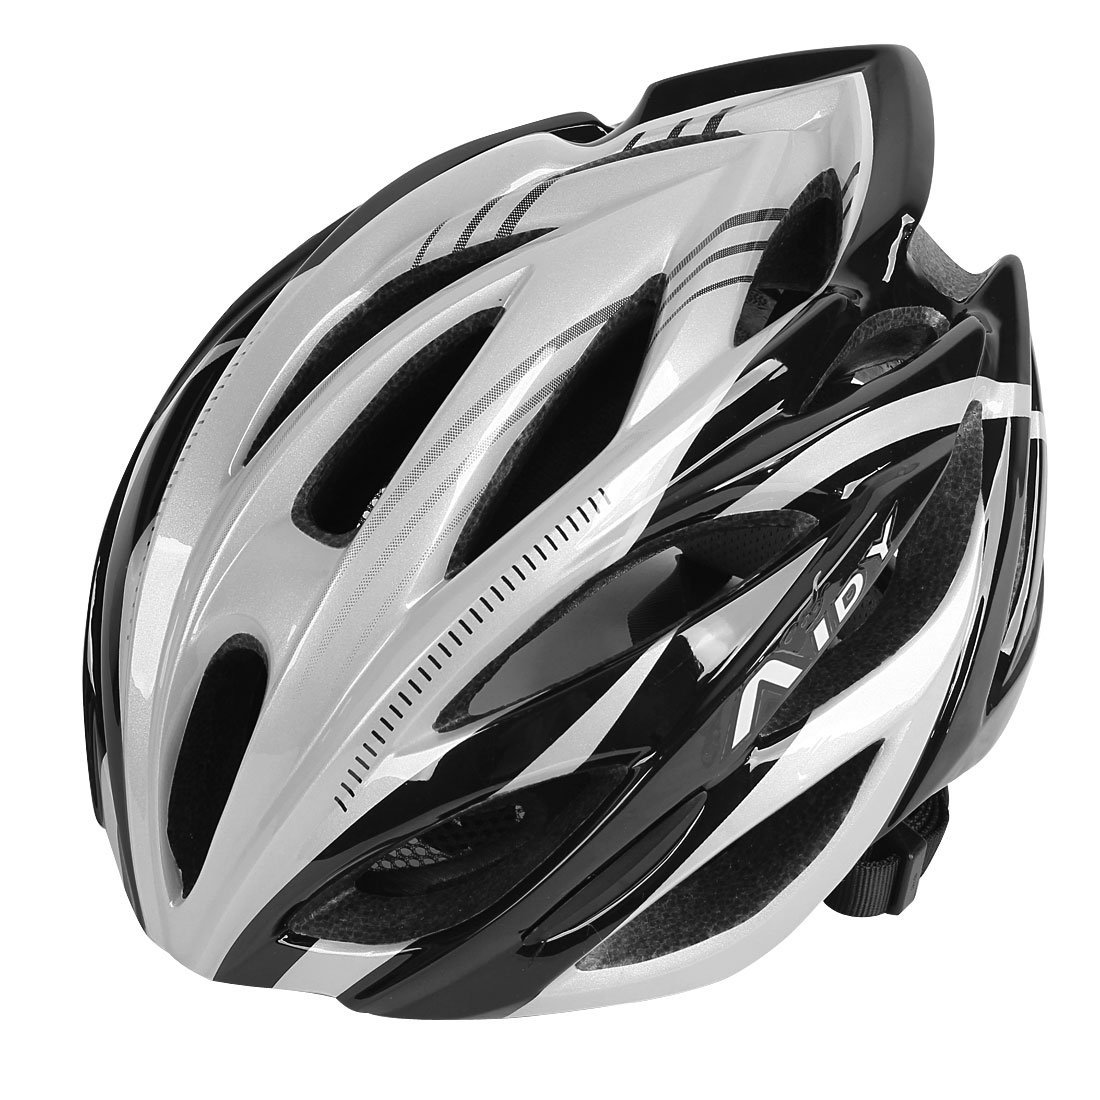 Silver Como Bicycle Helmets